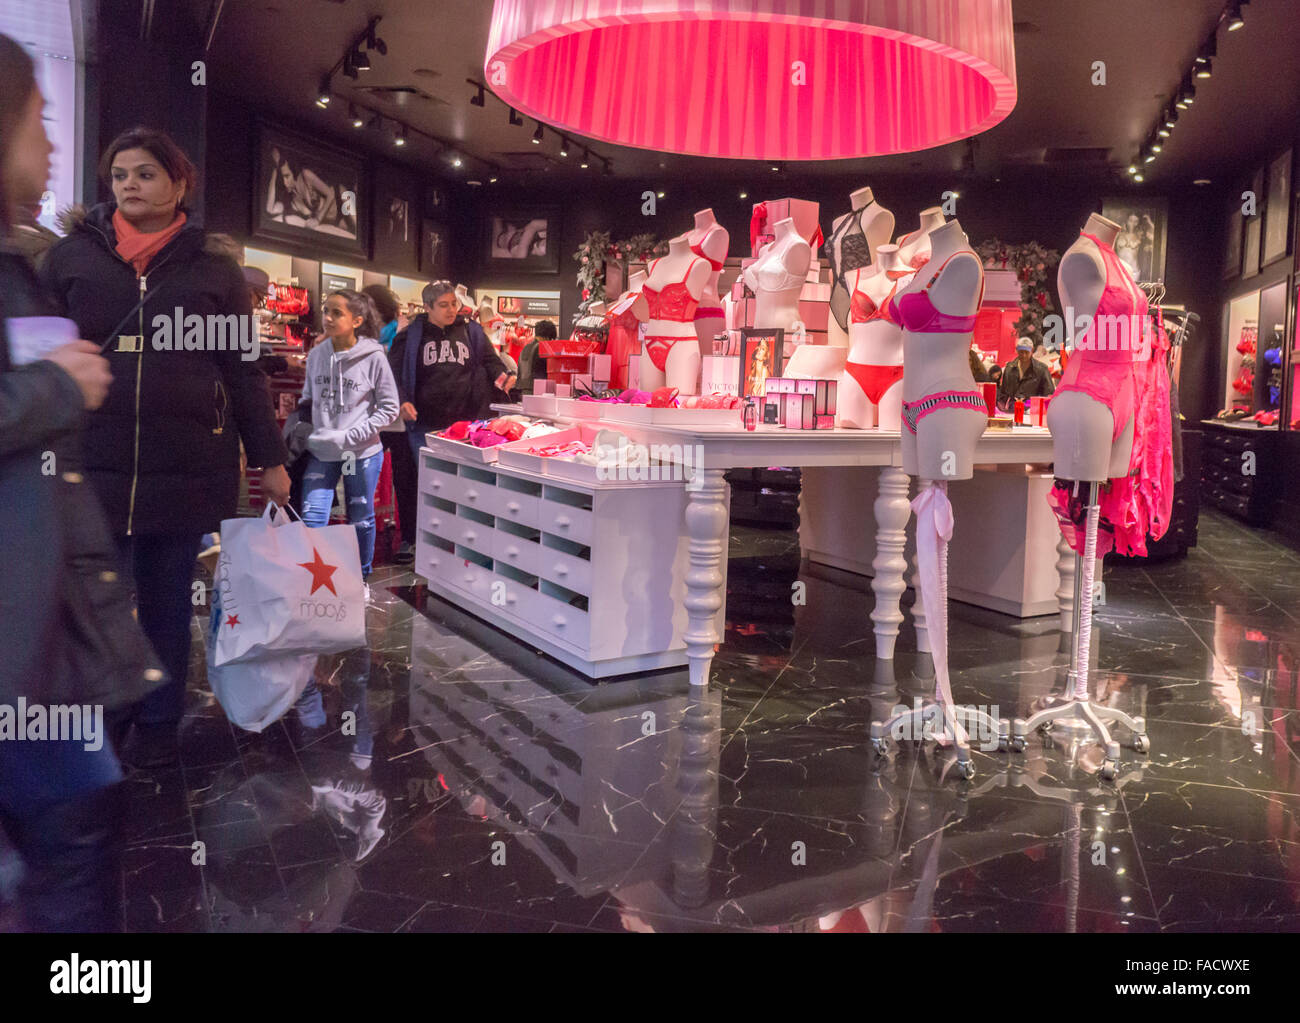 dcd944f950 Shoppers in the Victoria s Secret store in the Queens Center Mall in the  borough of Queens in New York on the so-called Super Saturday